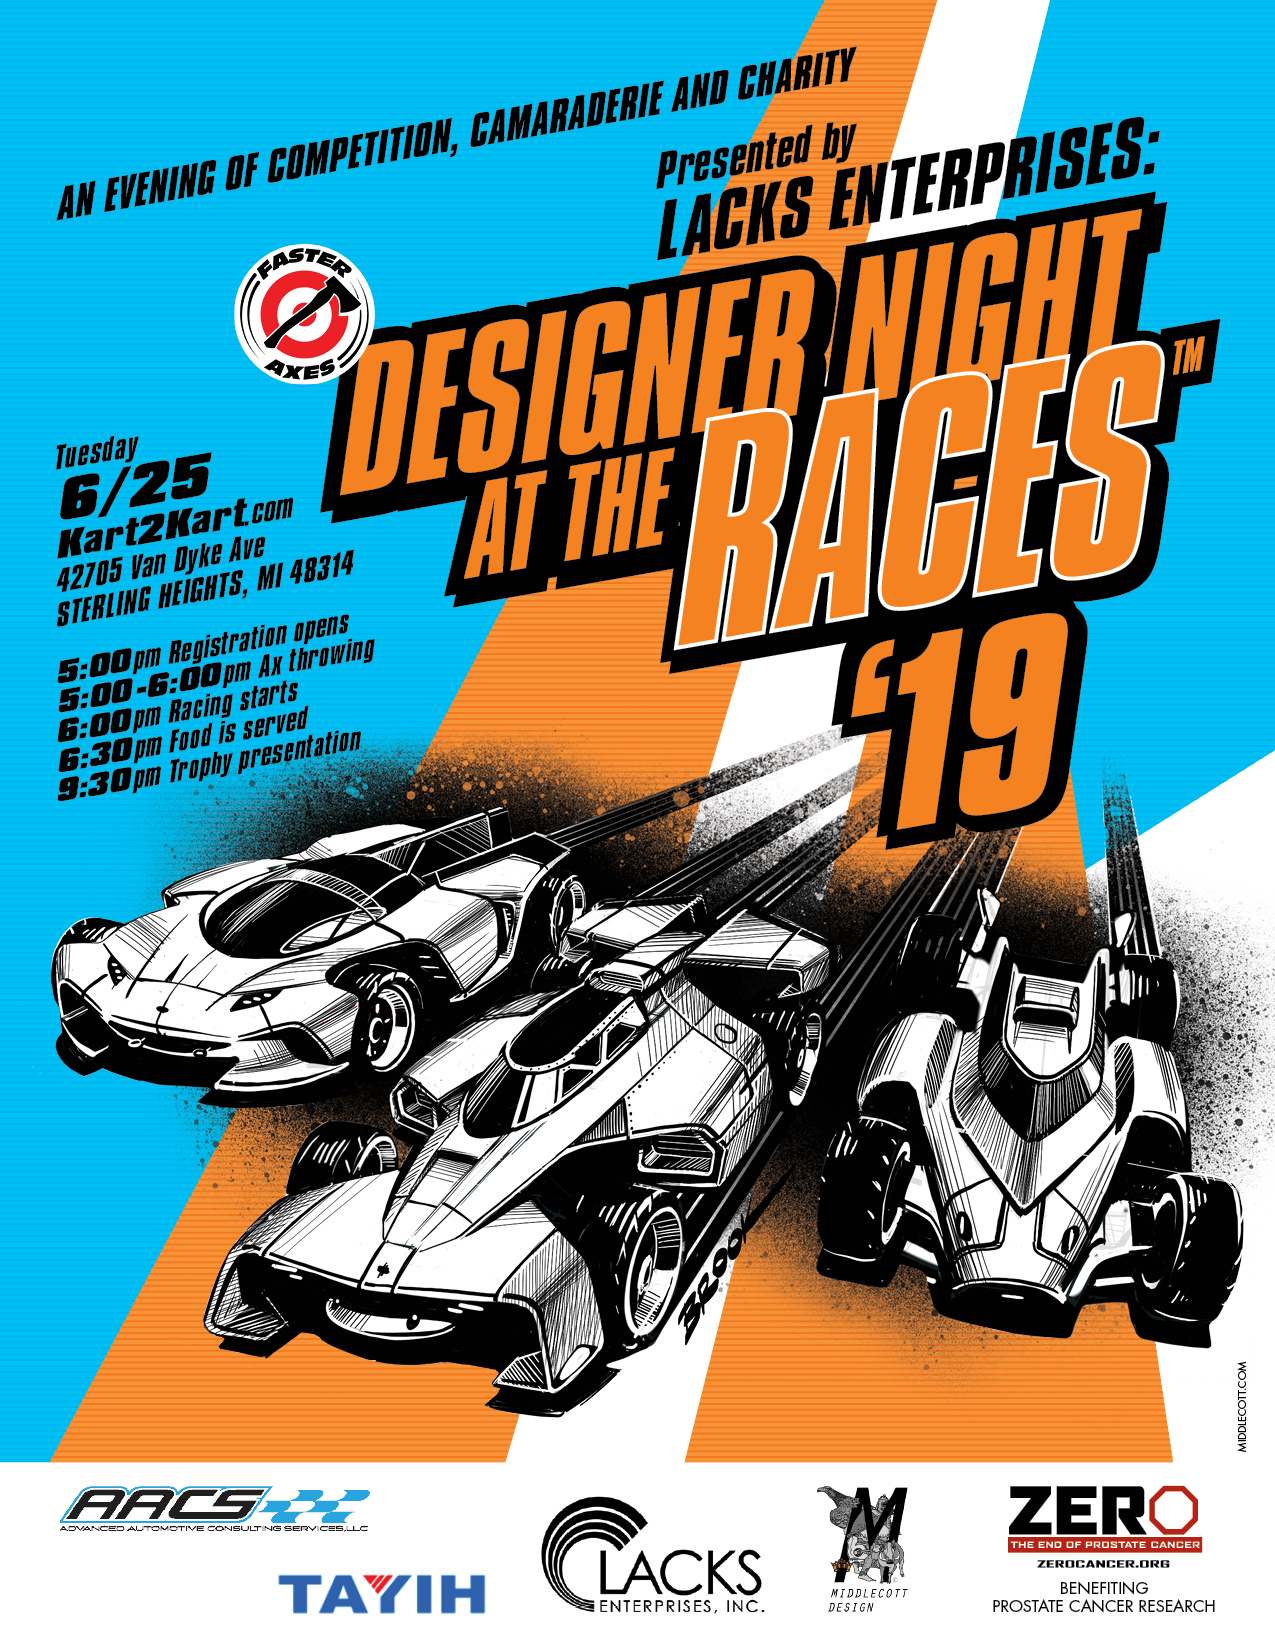 74th Designer Night at the Races June 25th 2019 Save the Date v3